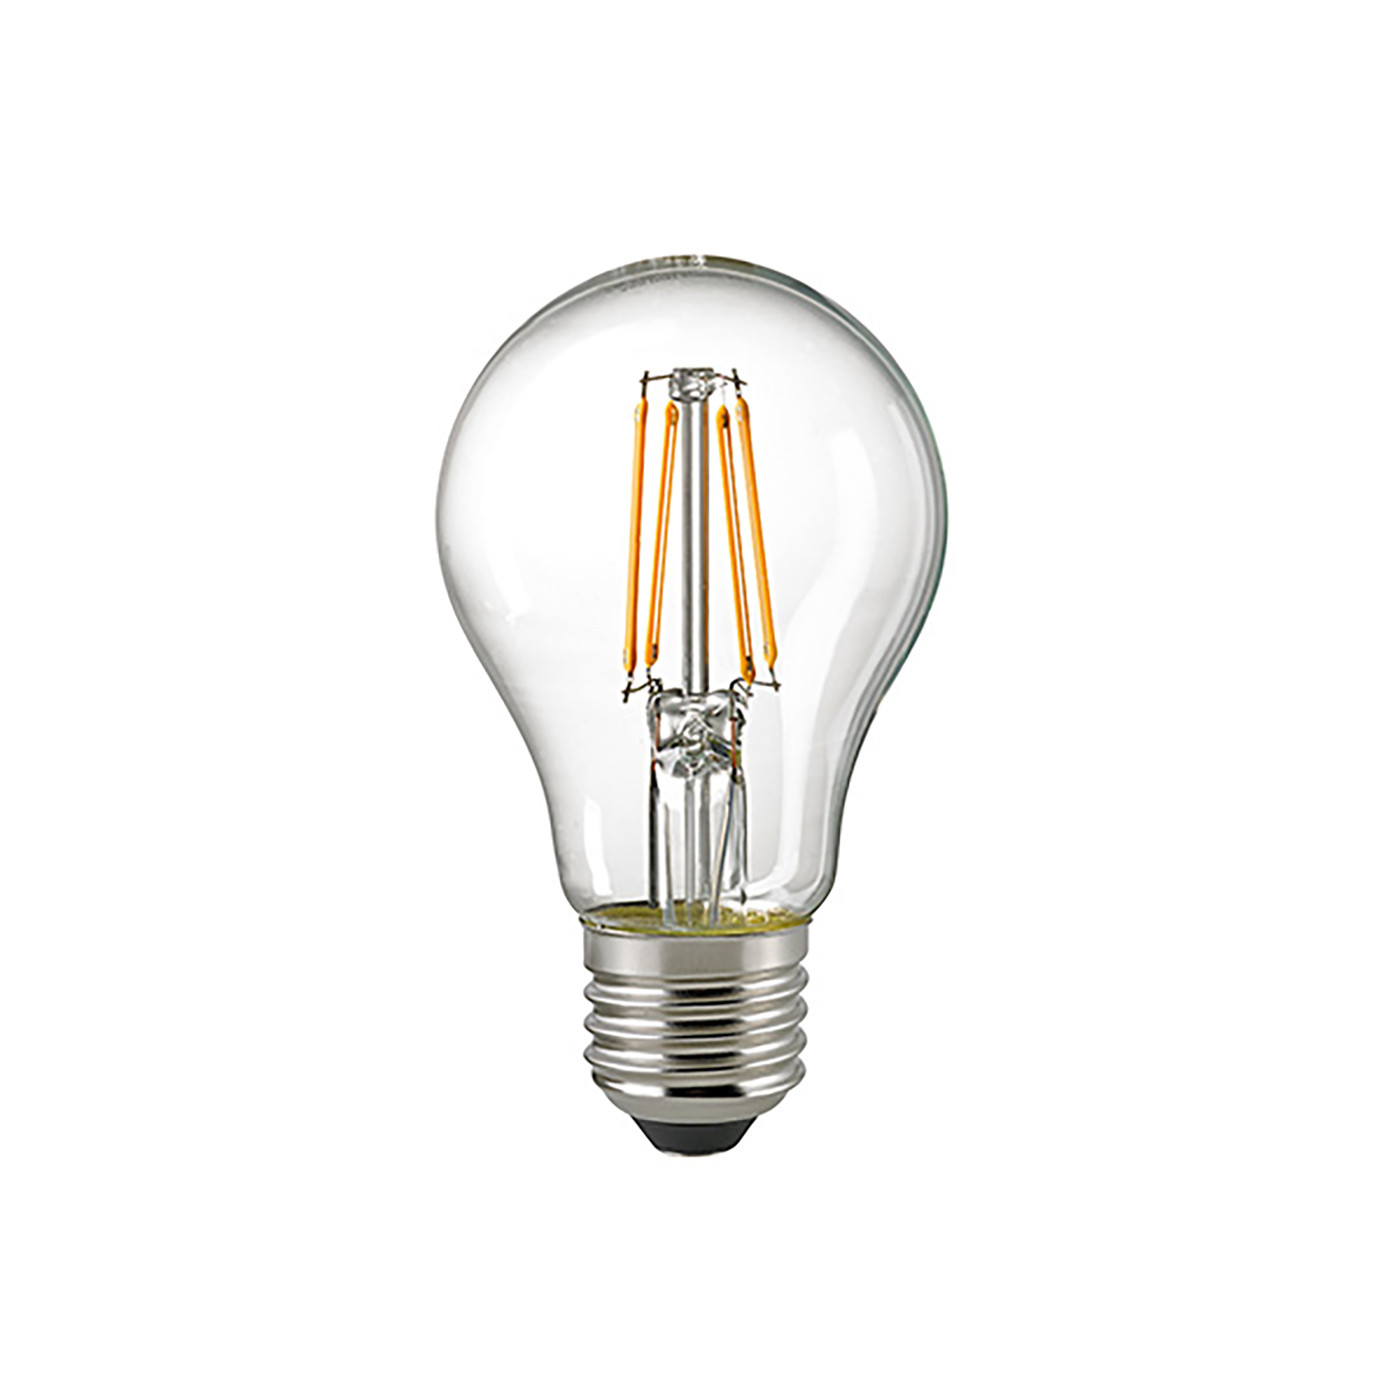 Sigor LED-Filament-Standardlampe A60 8,5W 2700K 230V E27 klar